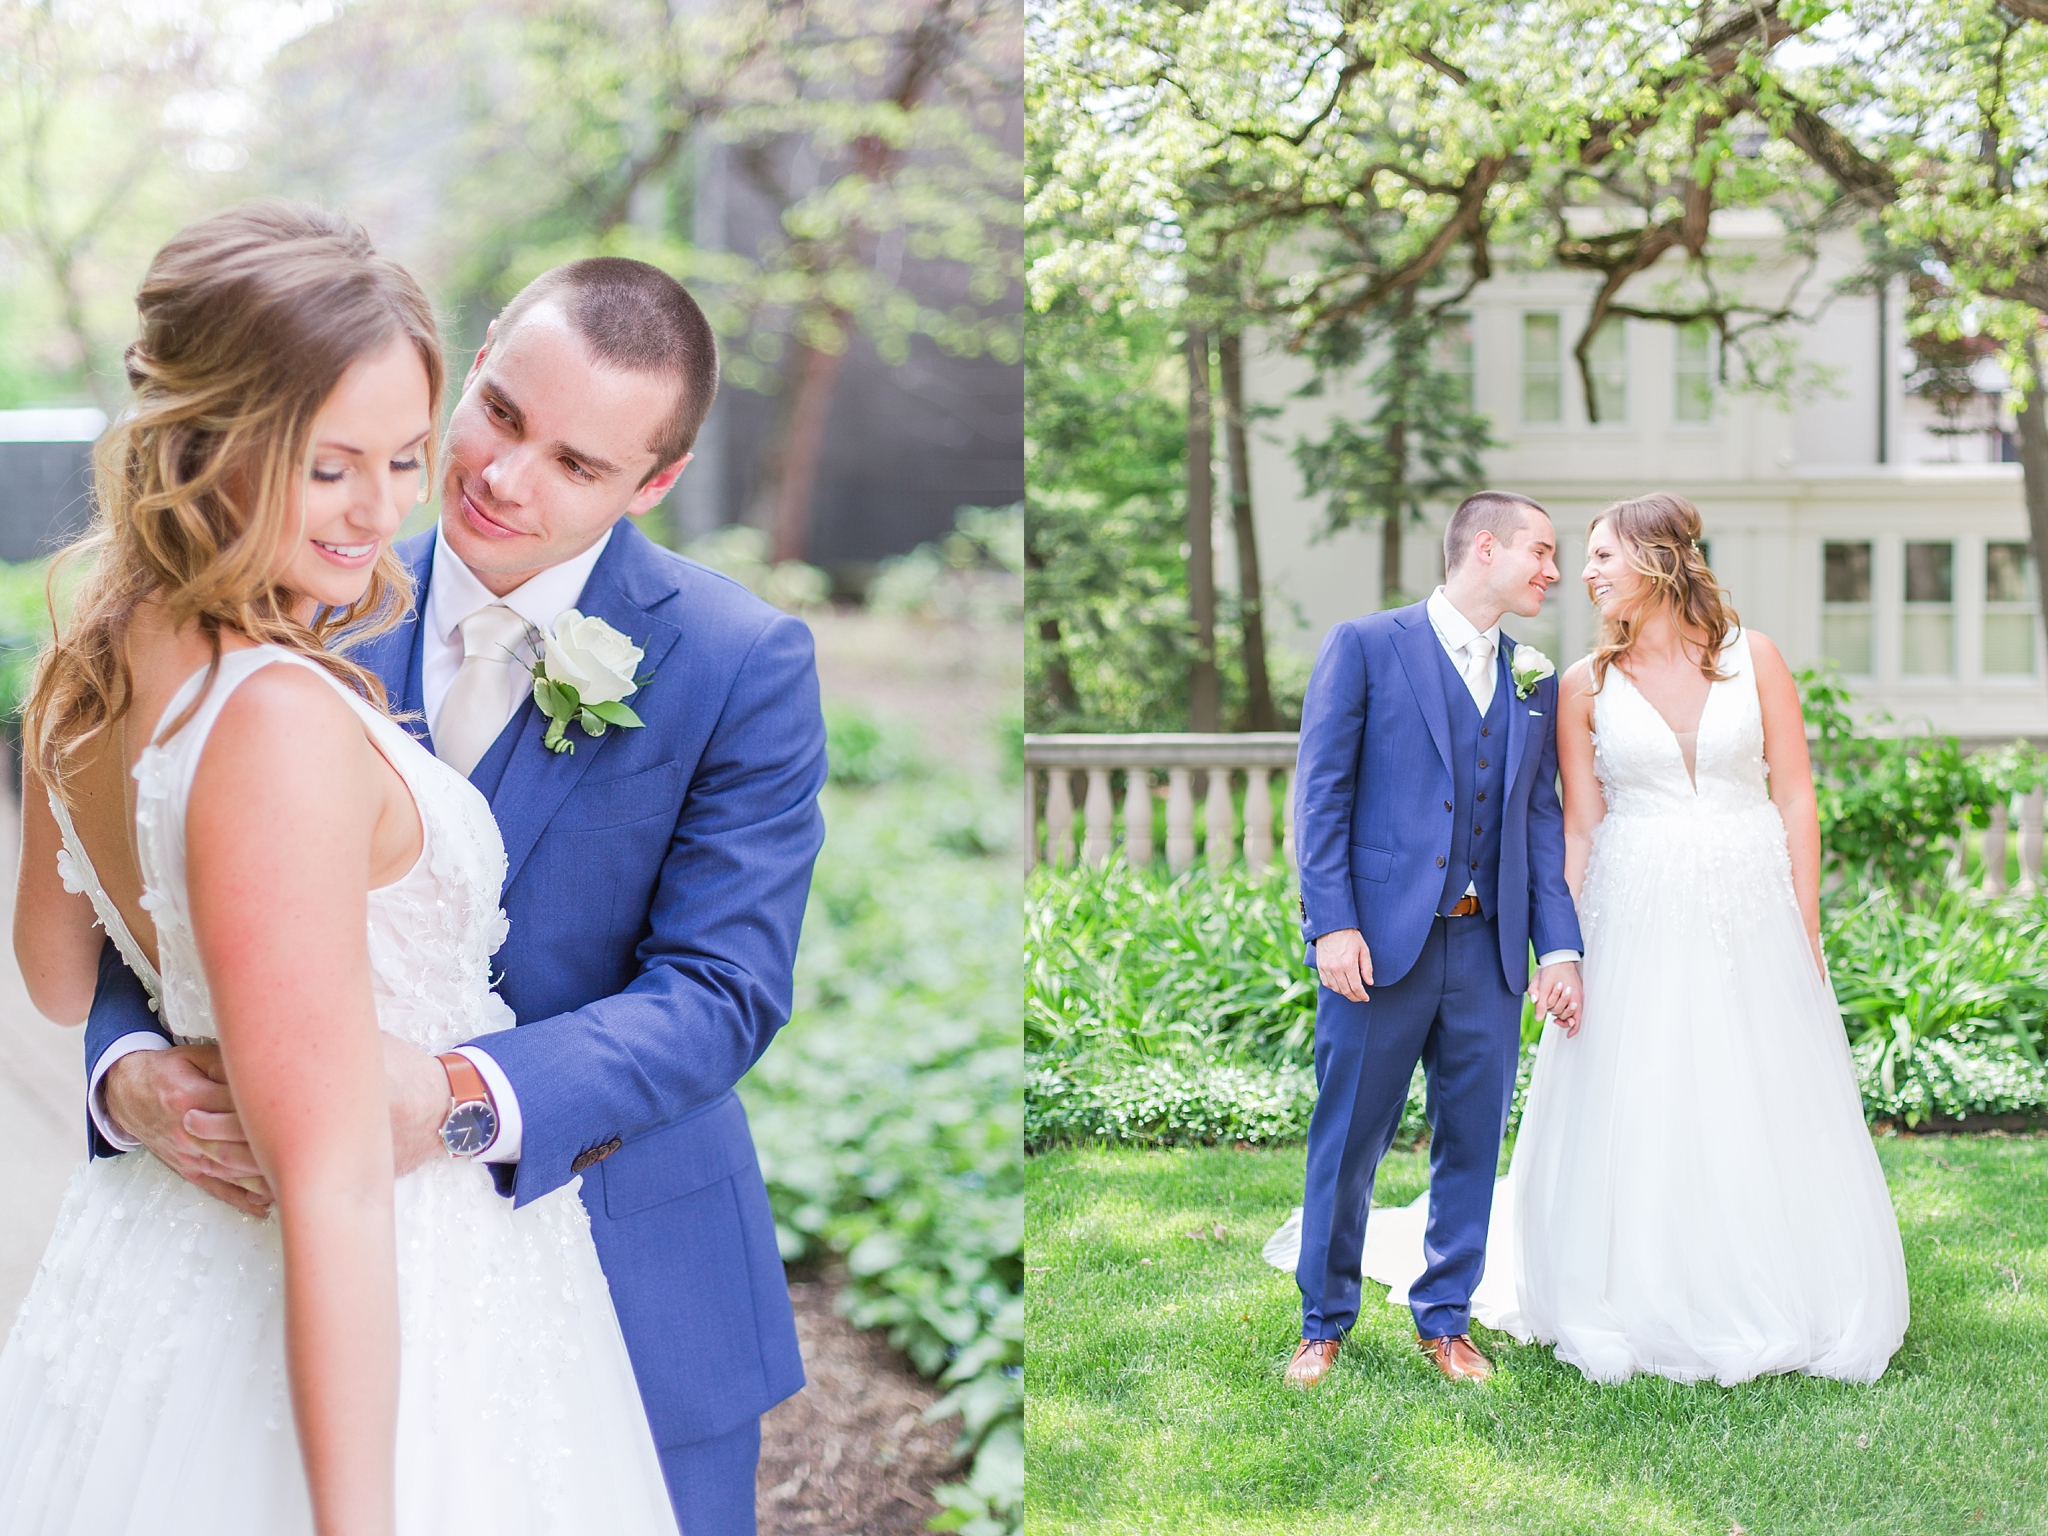 joyful-candid-laid-back-wedding-photos-in-ann-arbor-michigan-and-at-the-eagle-crest-golf-resort-by-courtney-carolyn-photography_0058.jpg